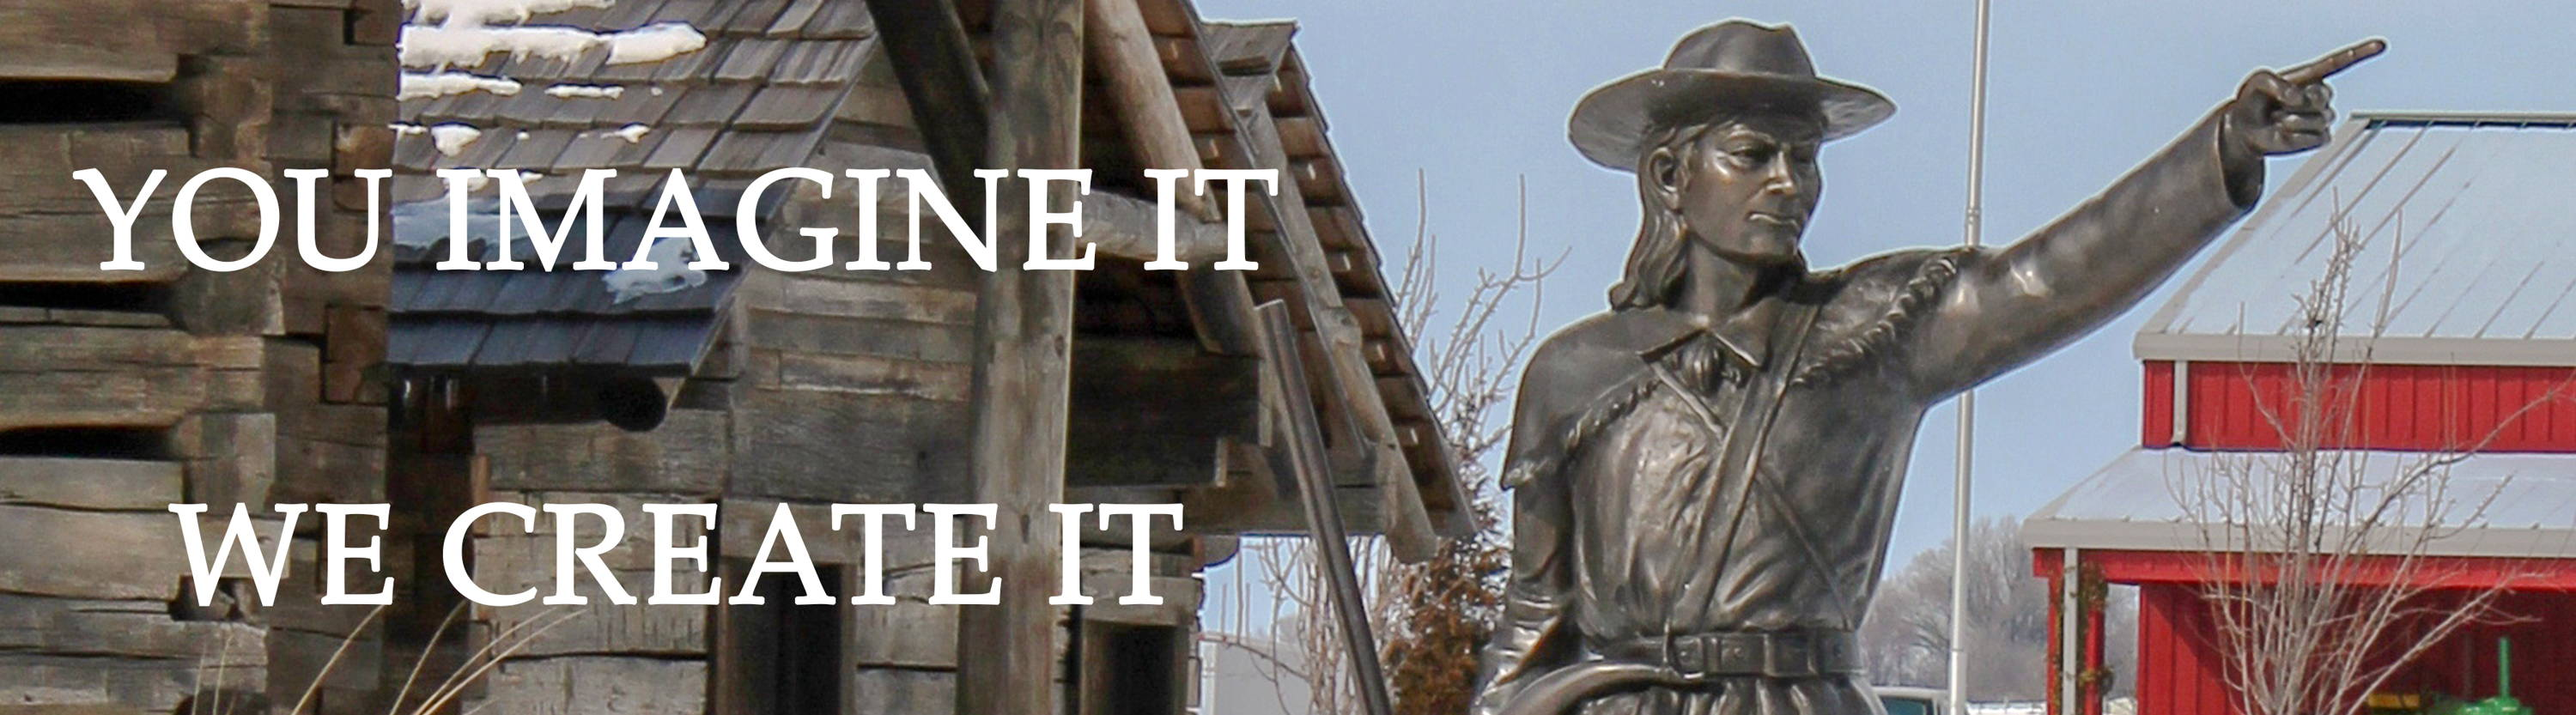 Davy Crockett Custom Bronze Sculpture - Designed & Cast for Discovery Park of America - Union City, TN